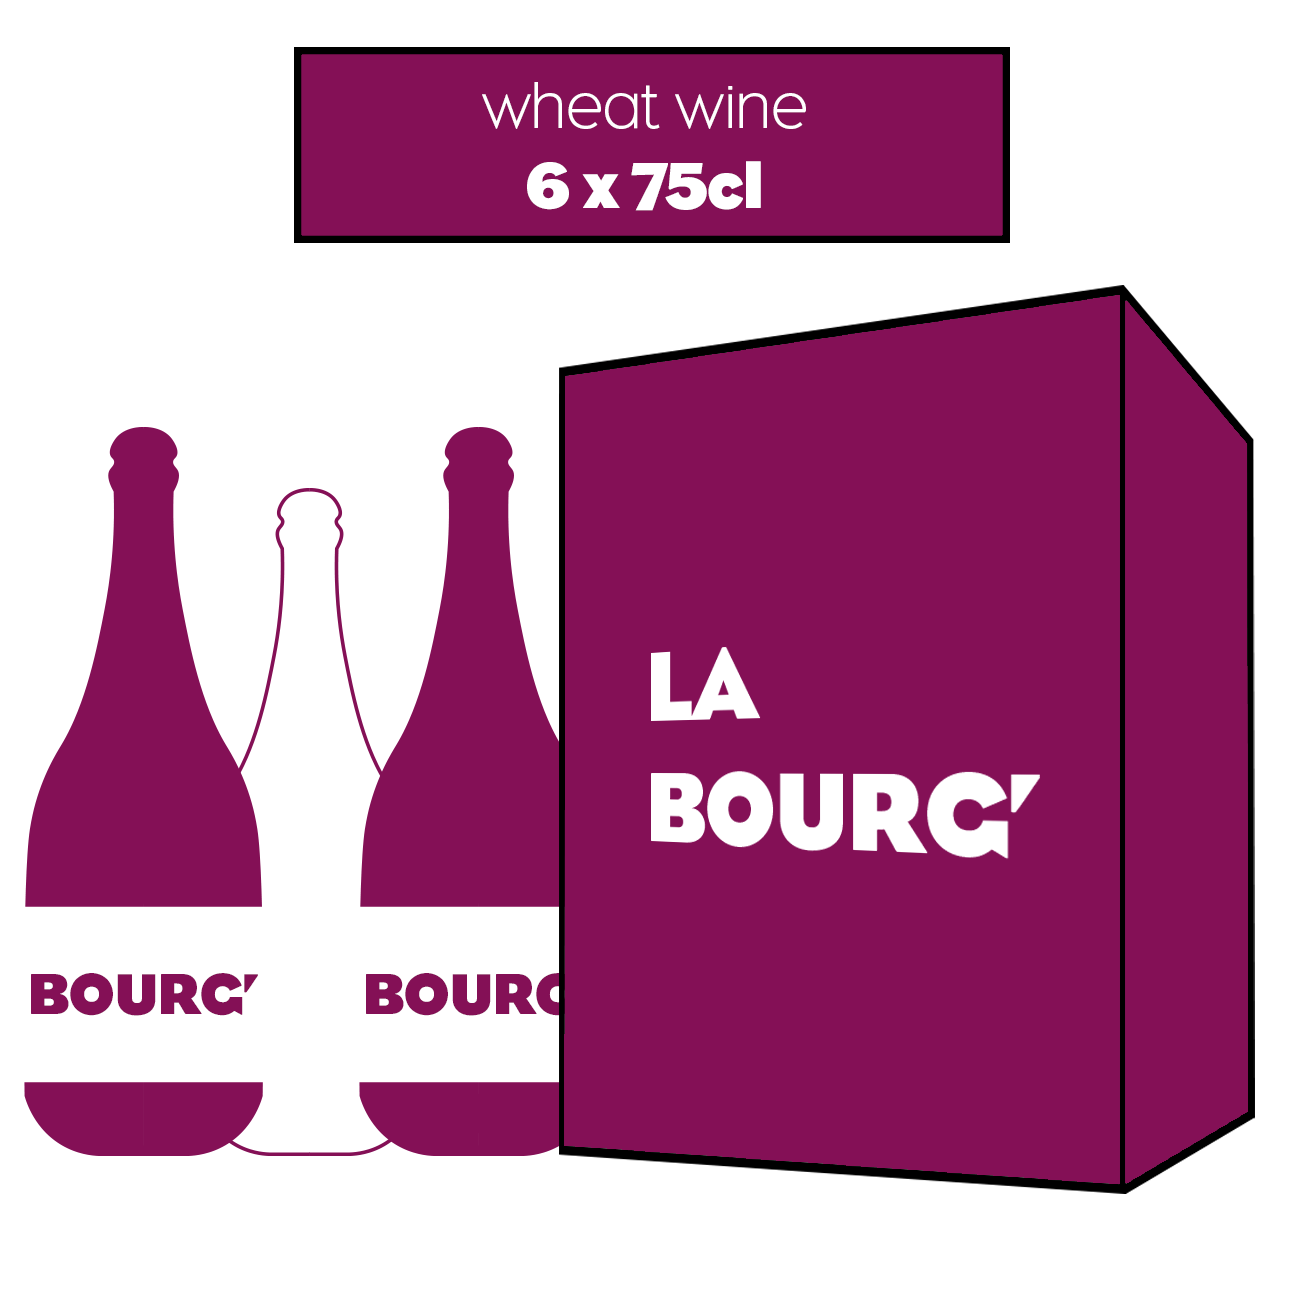 6 x BOURG' (Wheat wine 18 mois)